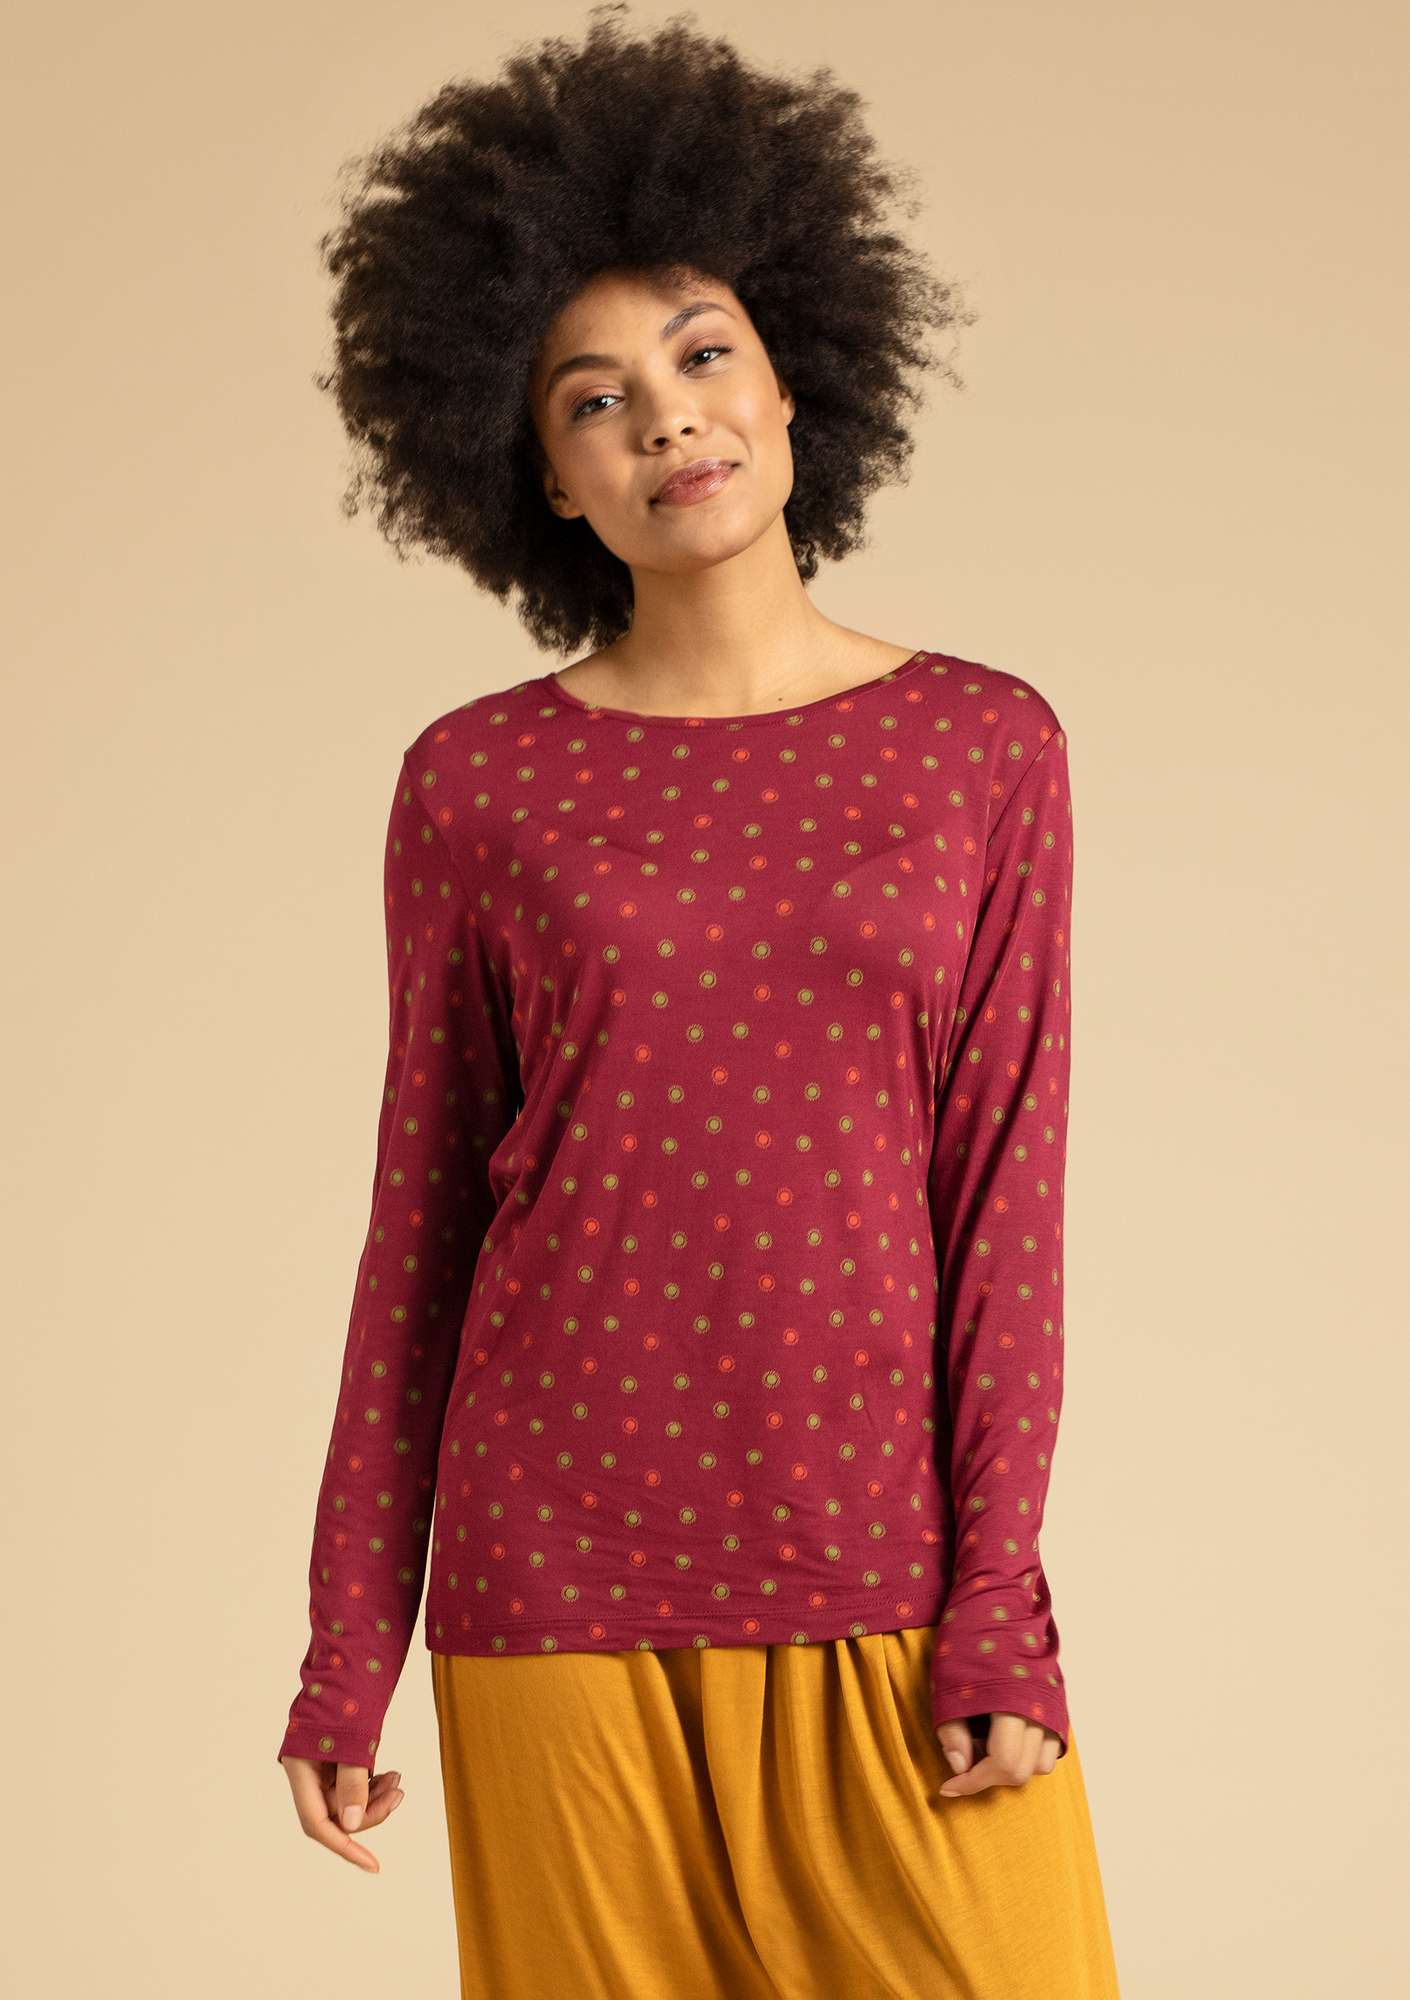 """Twinkle"" top in modal pomegranate/patterned"